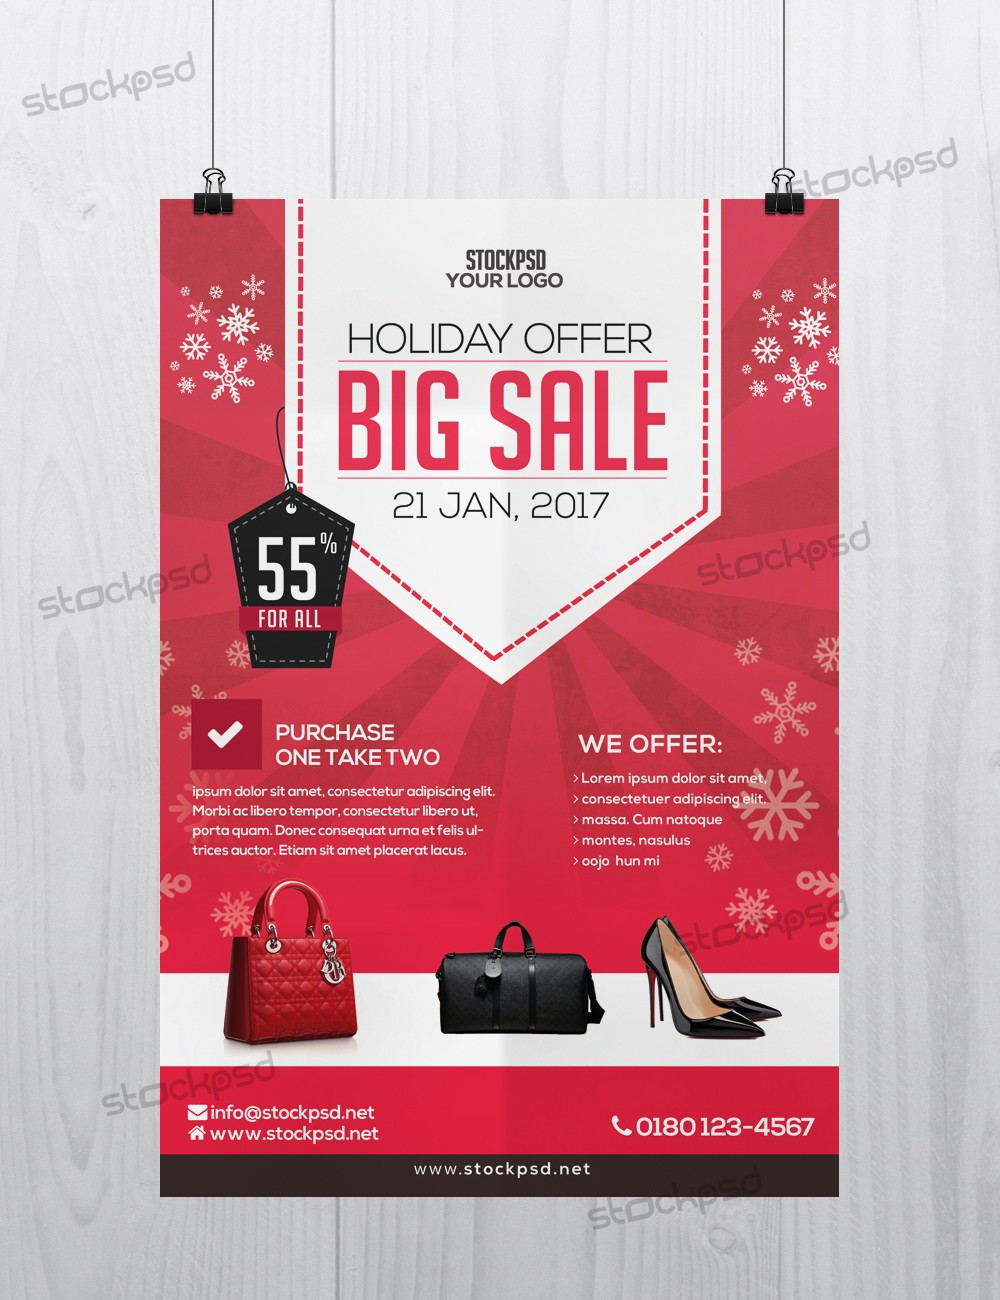 holiday 2017 big sale free psd flyer template free psd flyers brochures and more. Black Bedroom Furniture Sets. Home Design Ideas